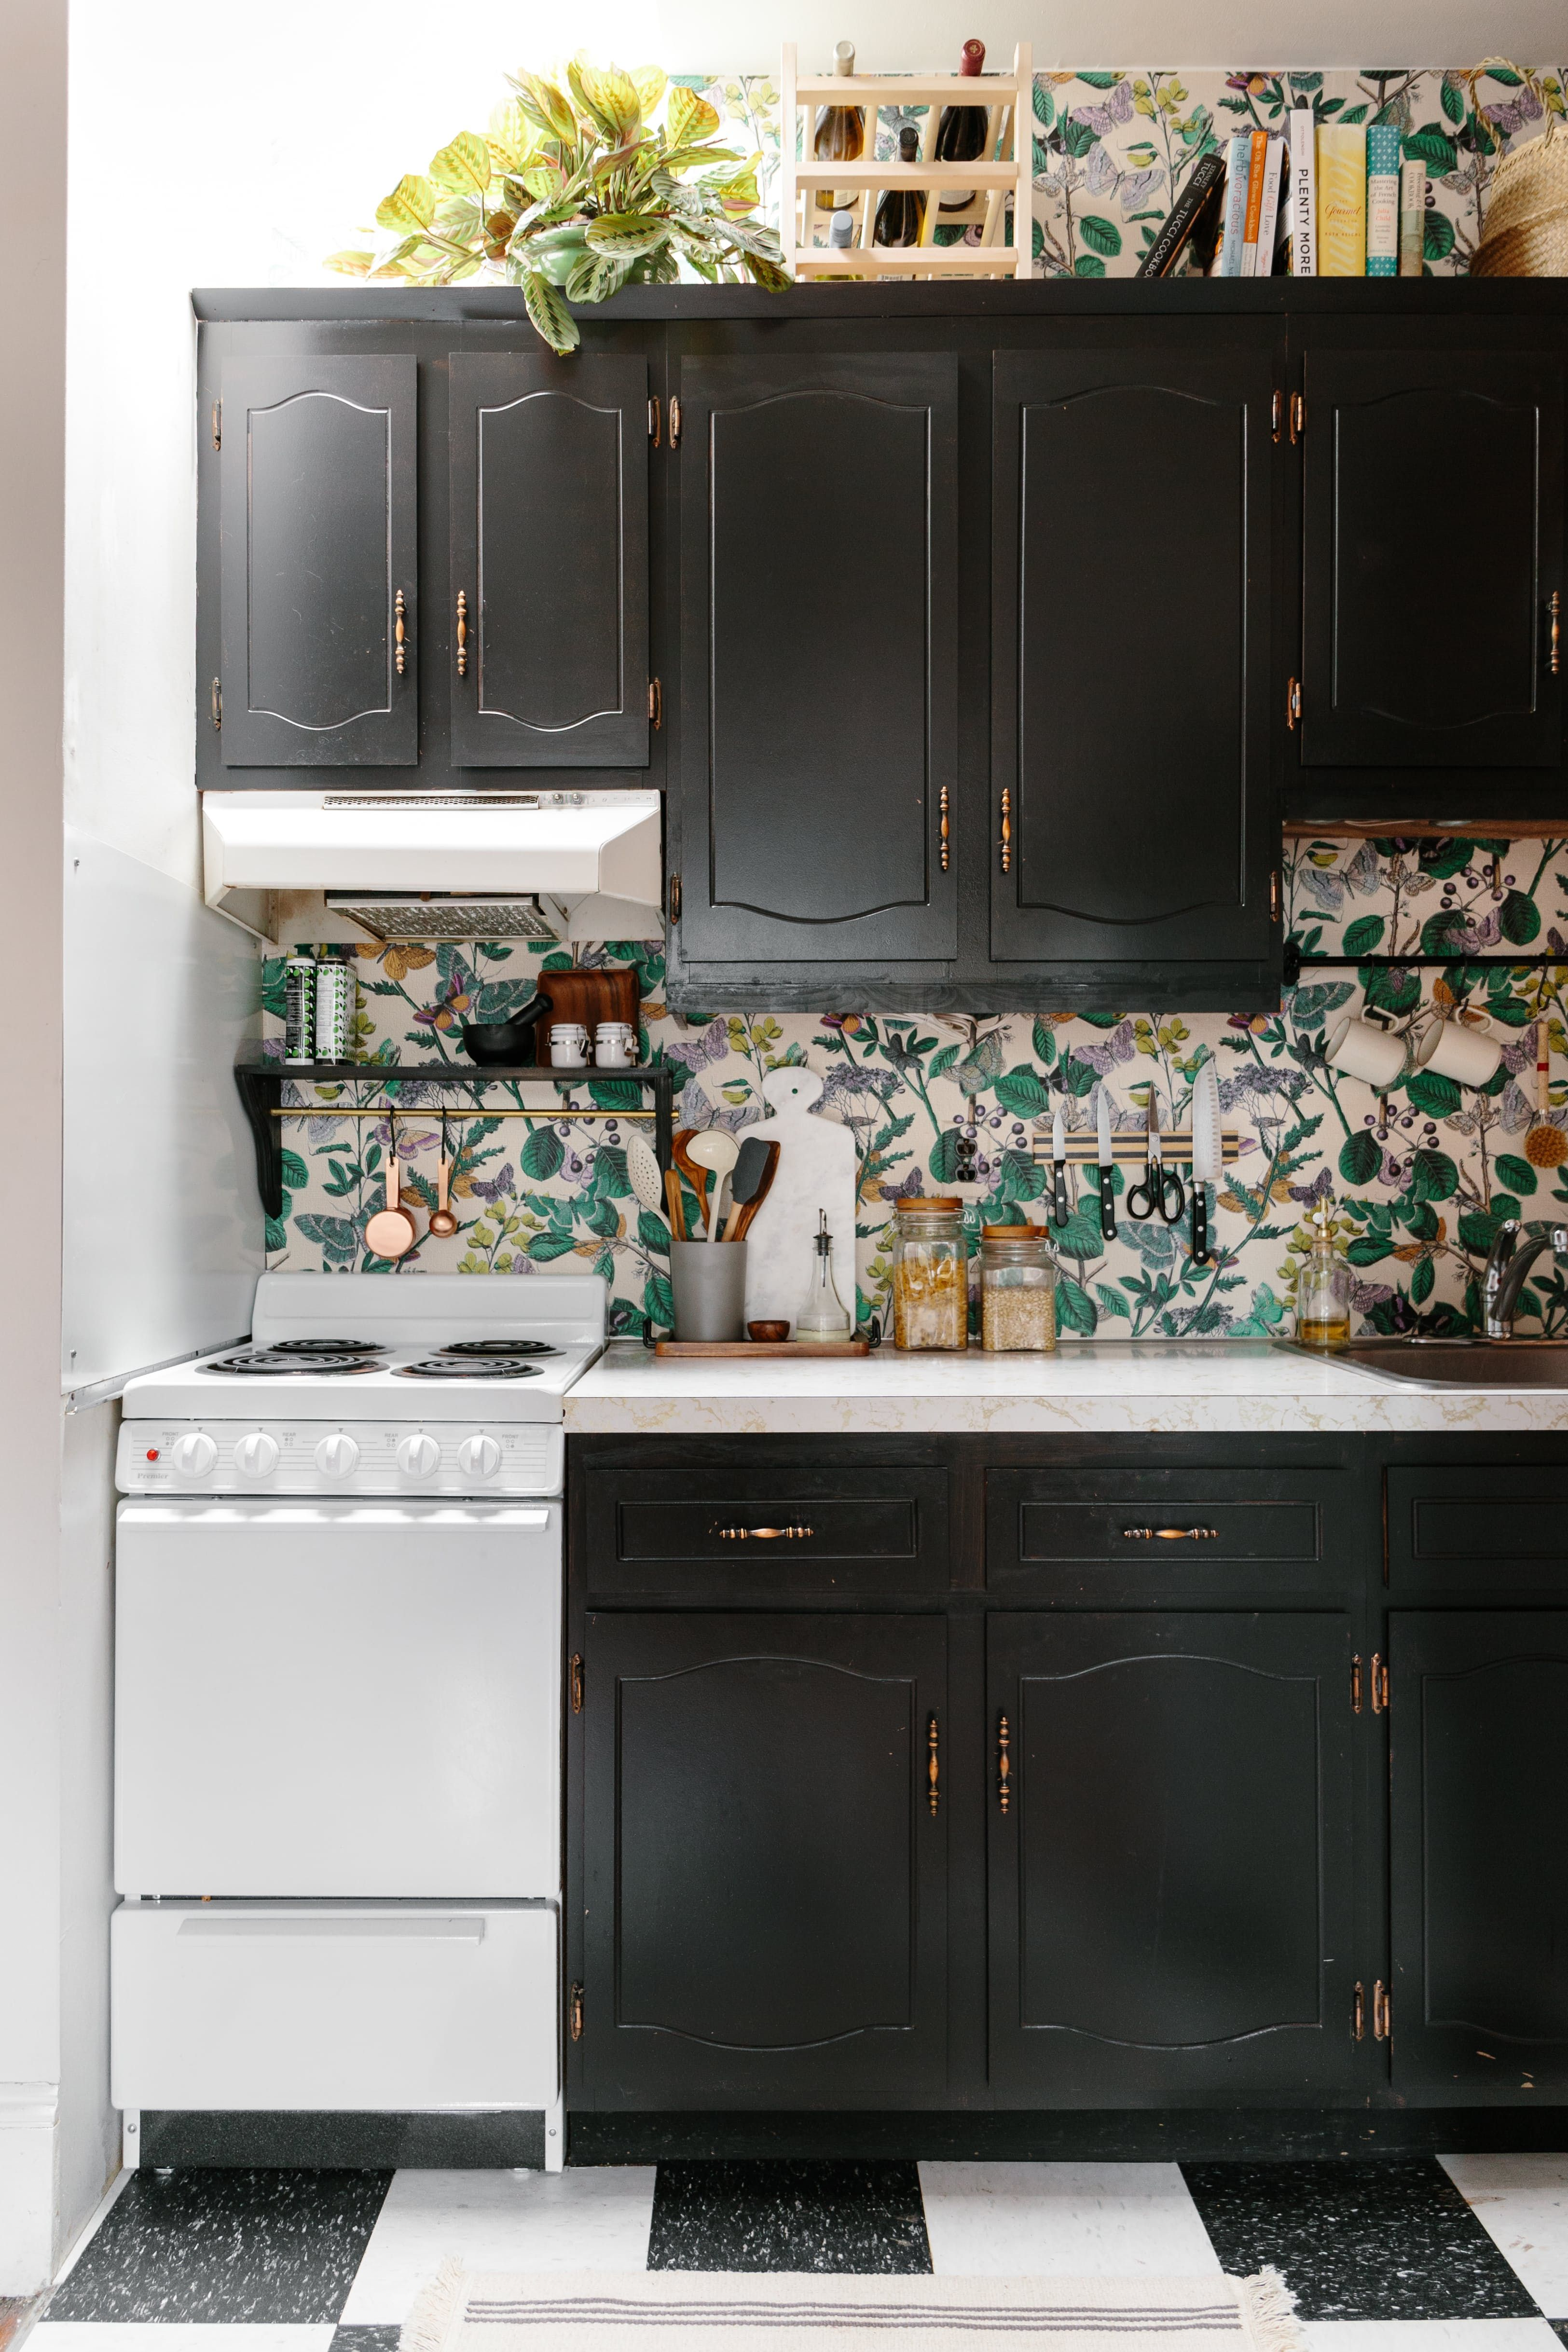 you don u0027t have to live with ugly kitchen cabinets appliances or backsplashes in your rental  here are diy ways to fix these top rental problem spots   300 later this rental kitchen is no longer recognizable   rental      rh   pinterest co uk